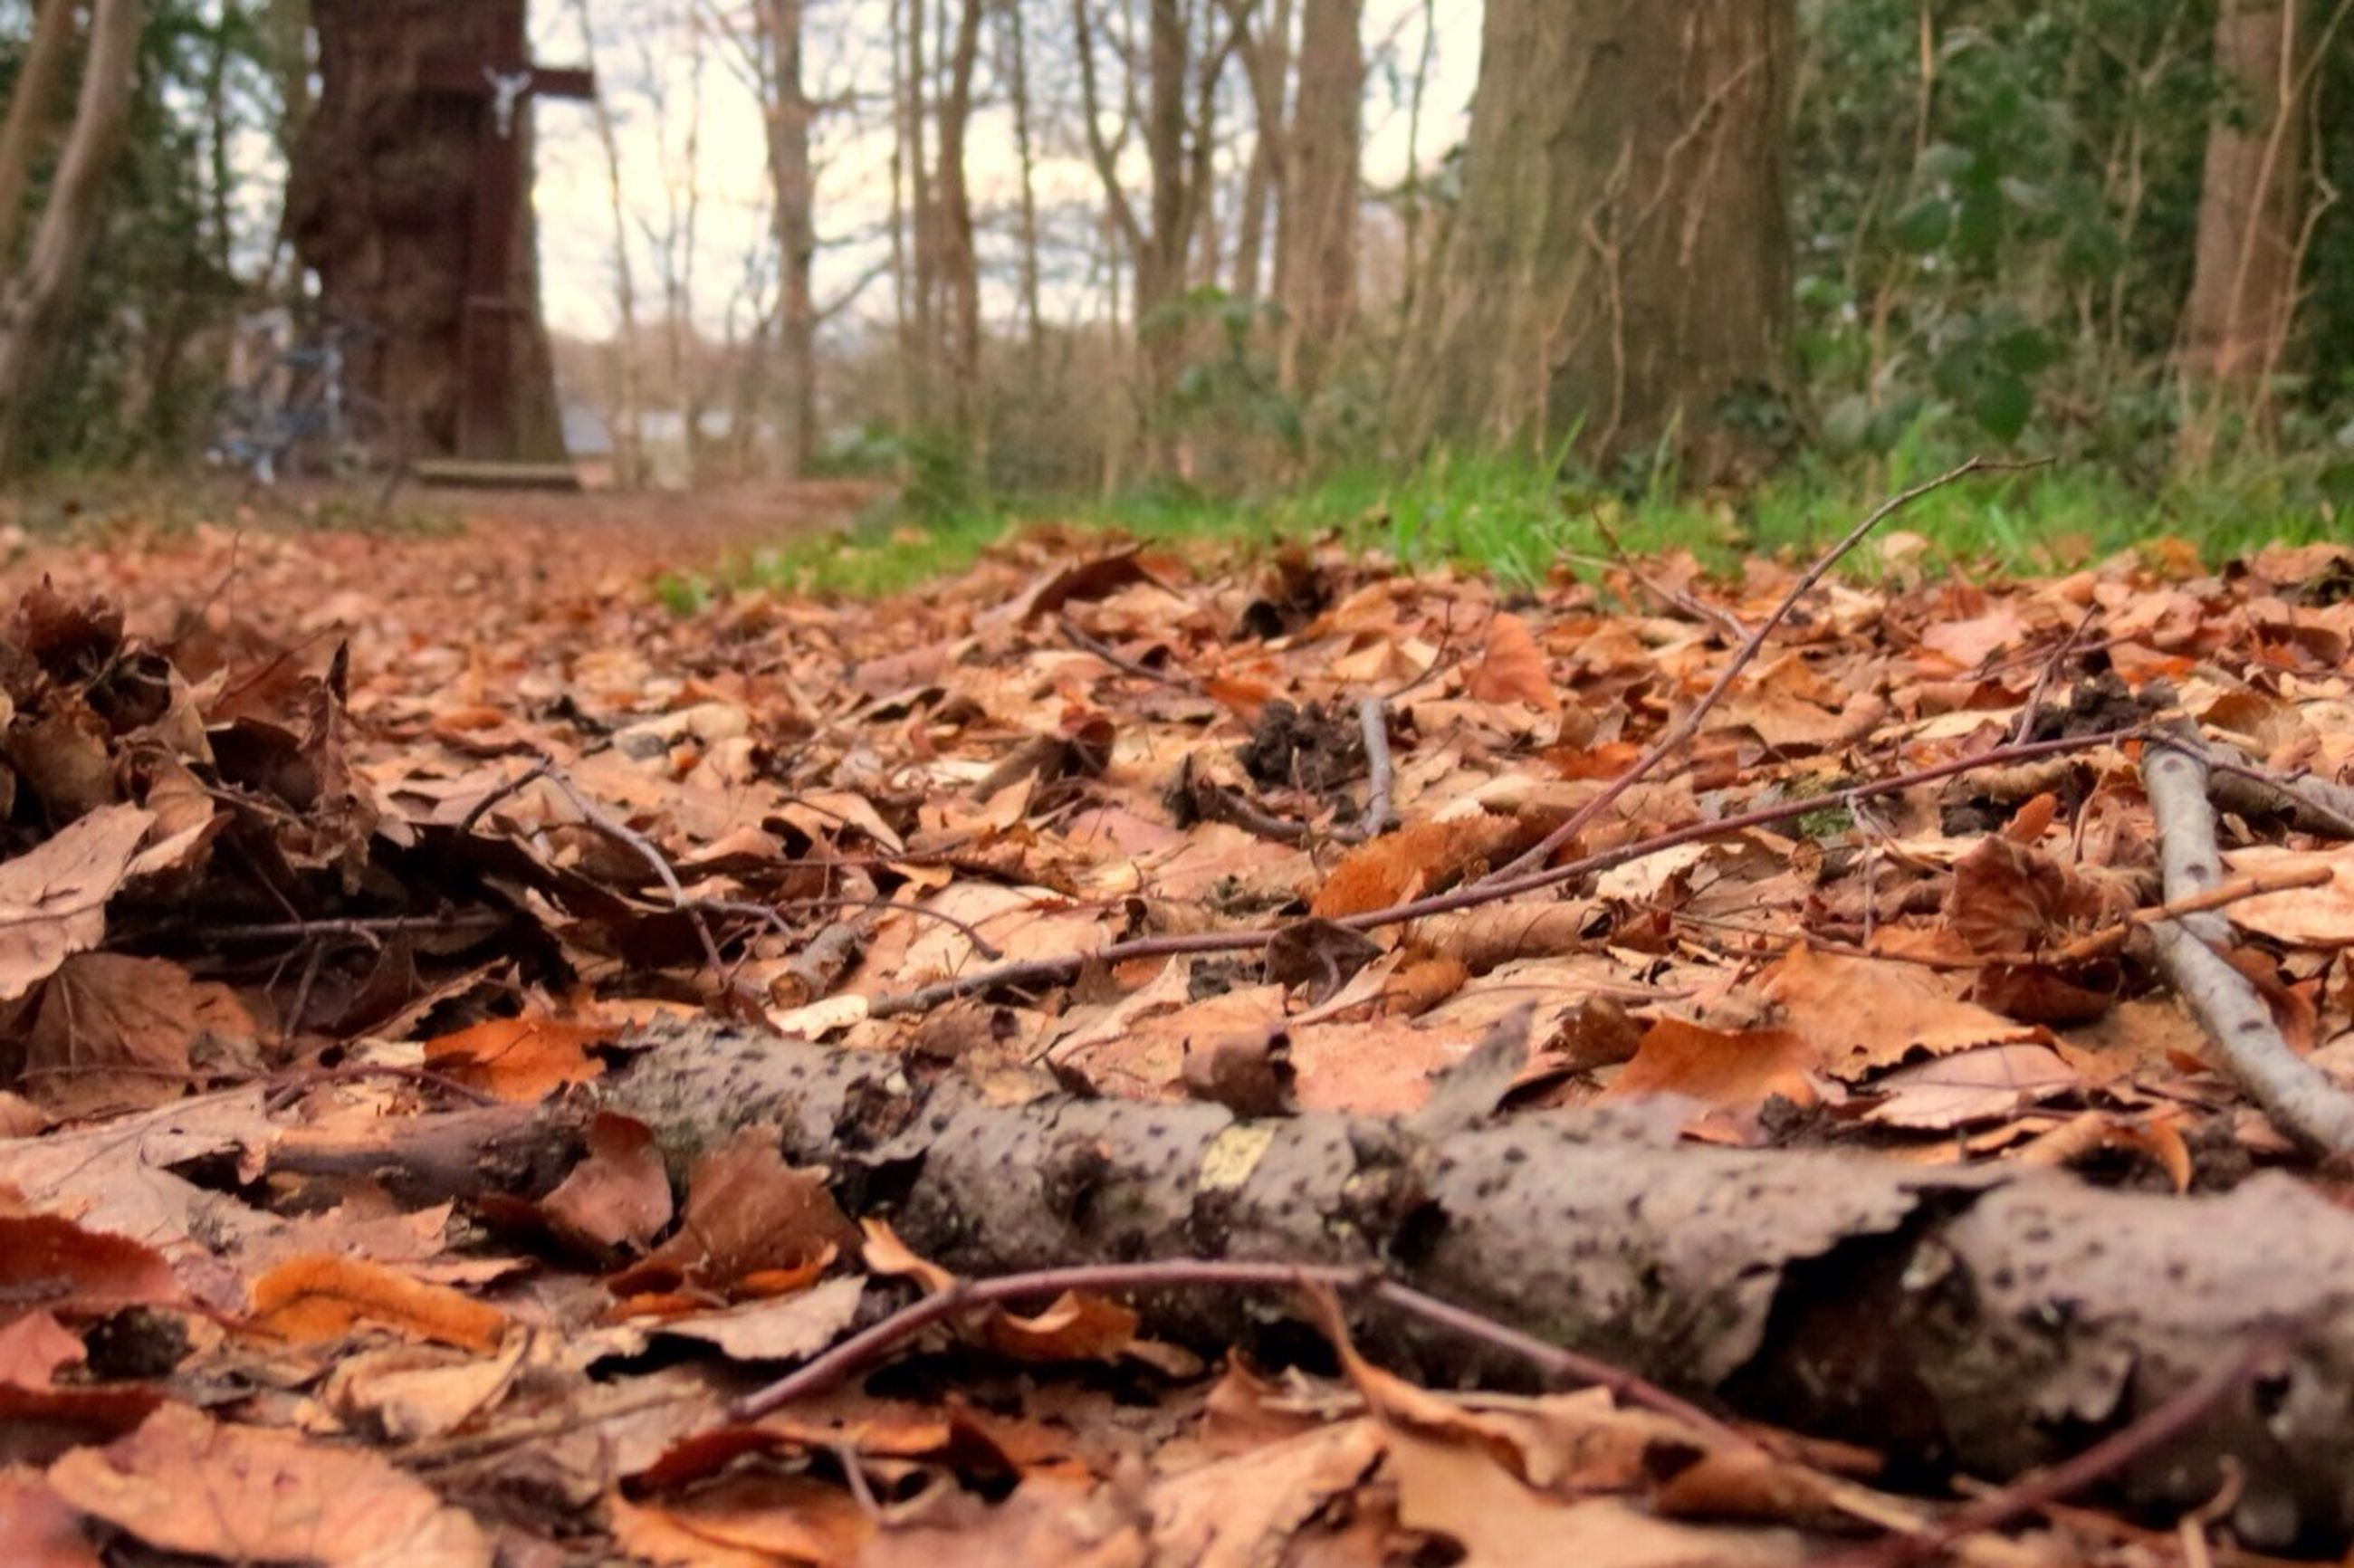 autumn, leaf, forest, dry, change, tree, fallen, tree trunk, leaves, nature, tranquility, season, woodland, falling, field, ground, day, surface level, selective focus, fallen leaf